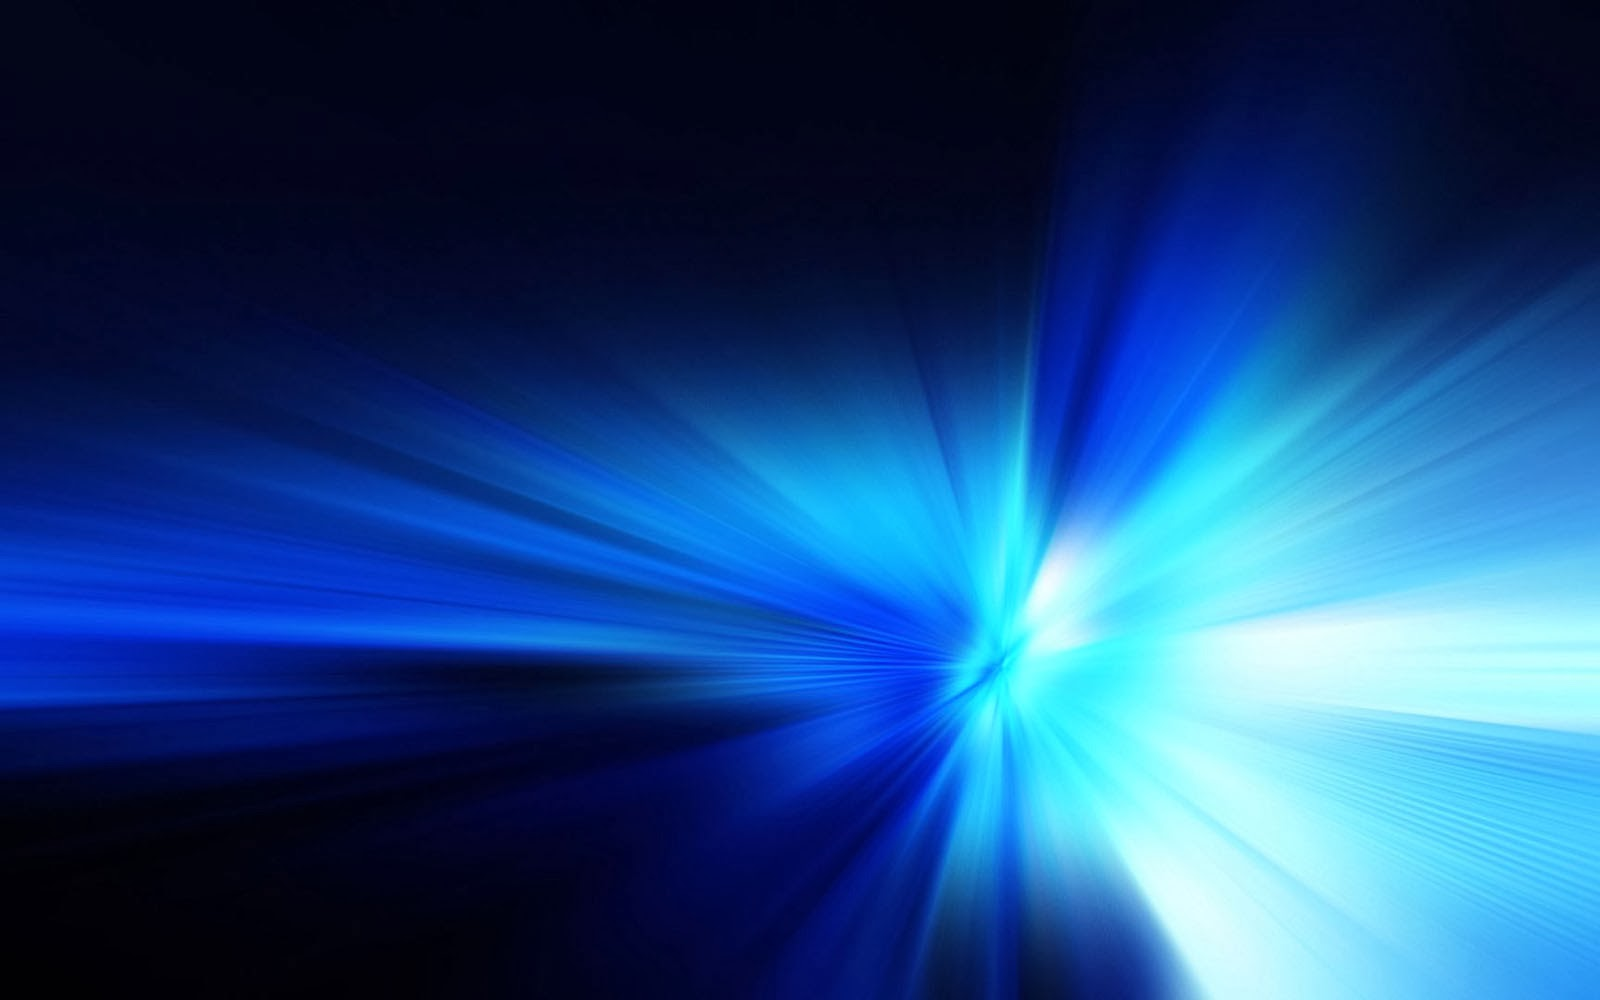 Wallpapers: Abstract Flare Wallpapers